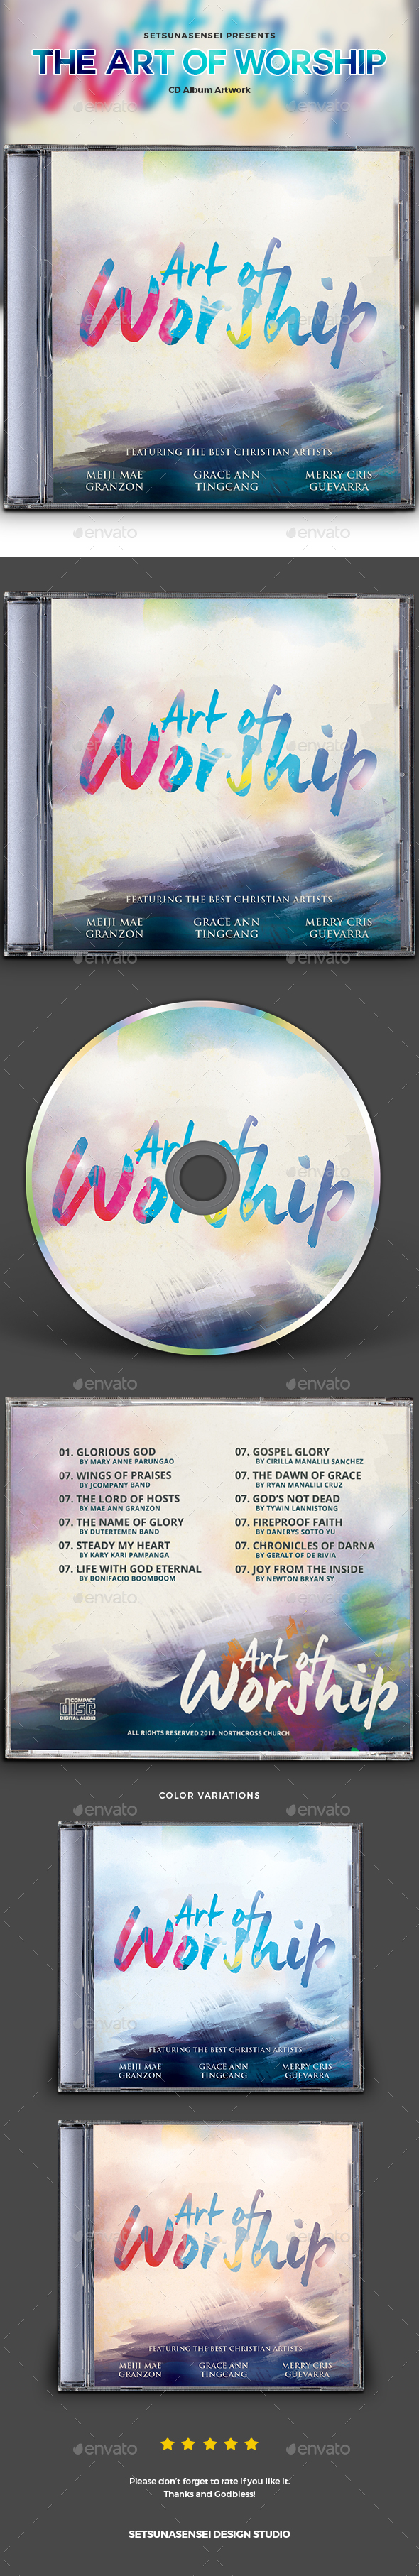 The Art of Worship CD Album Artwork - CD & DVD Artwork Print Templates